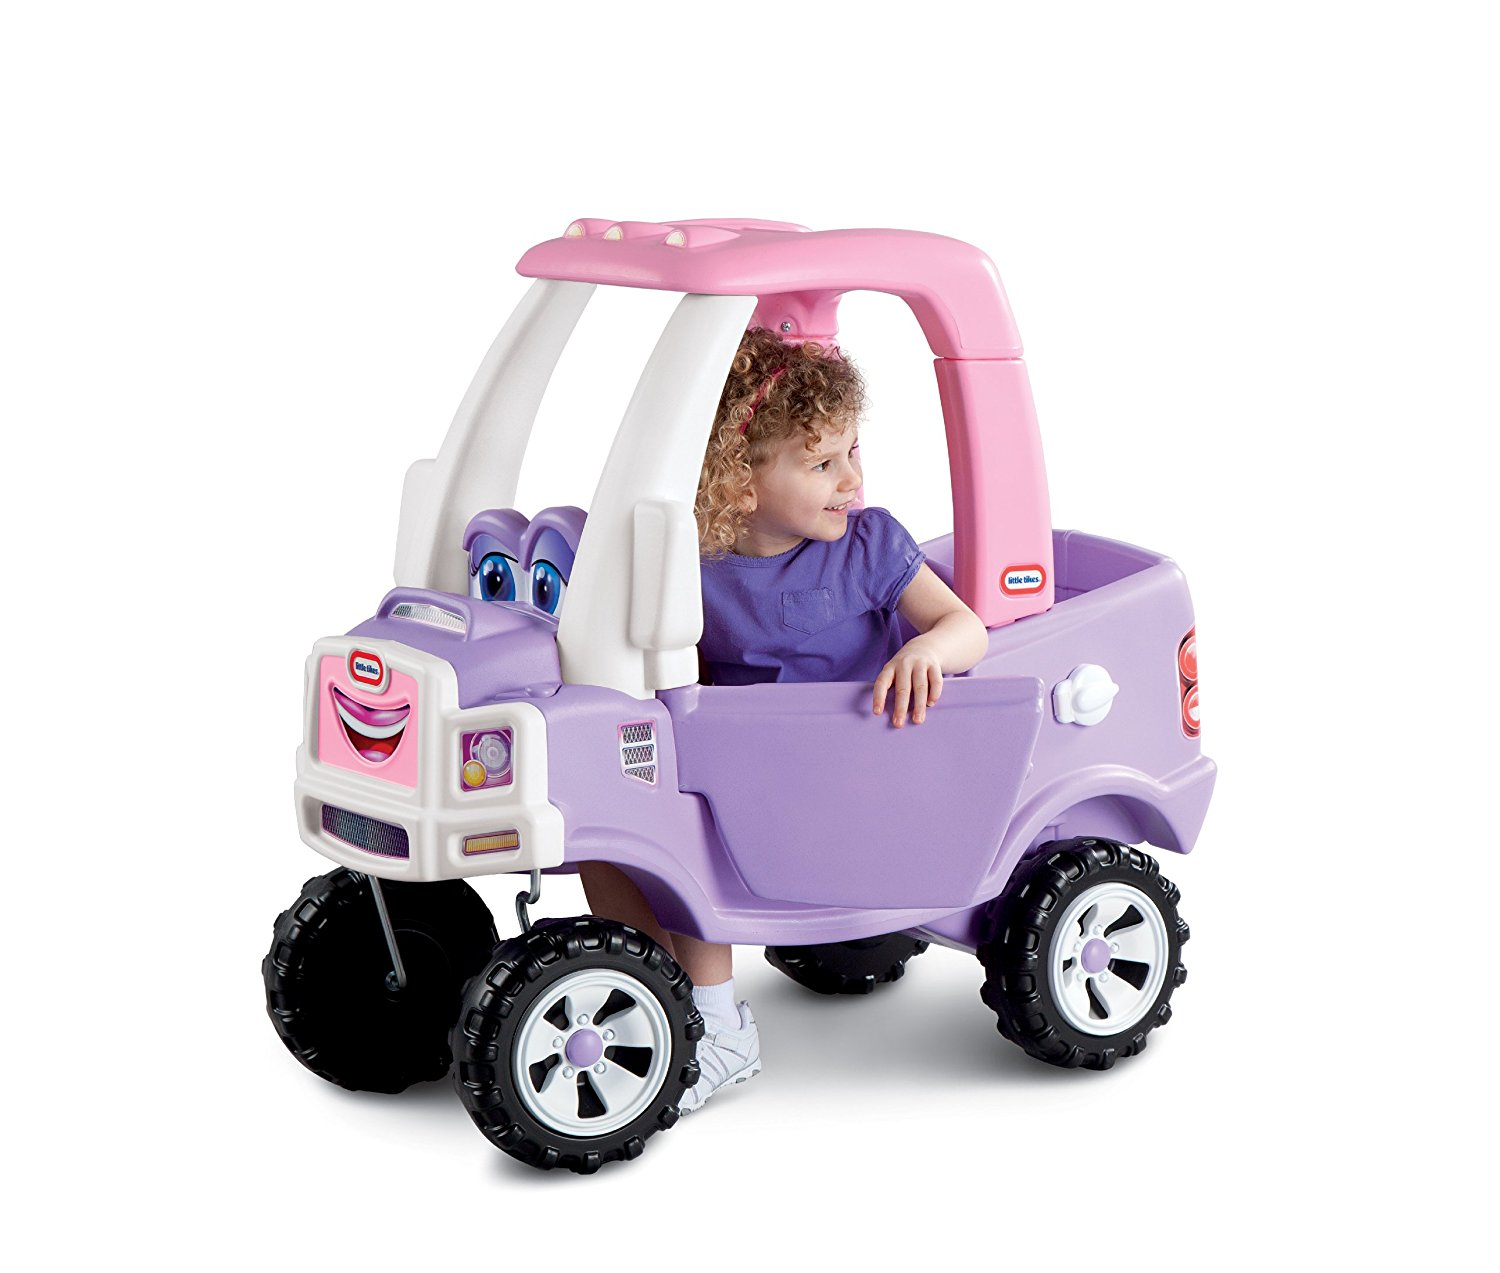 Smart Trike Roze Little Tikes Princess Cozy Truck Ride On Just 51 27 Save 43